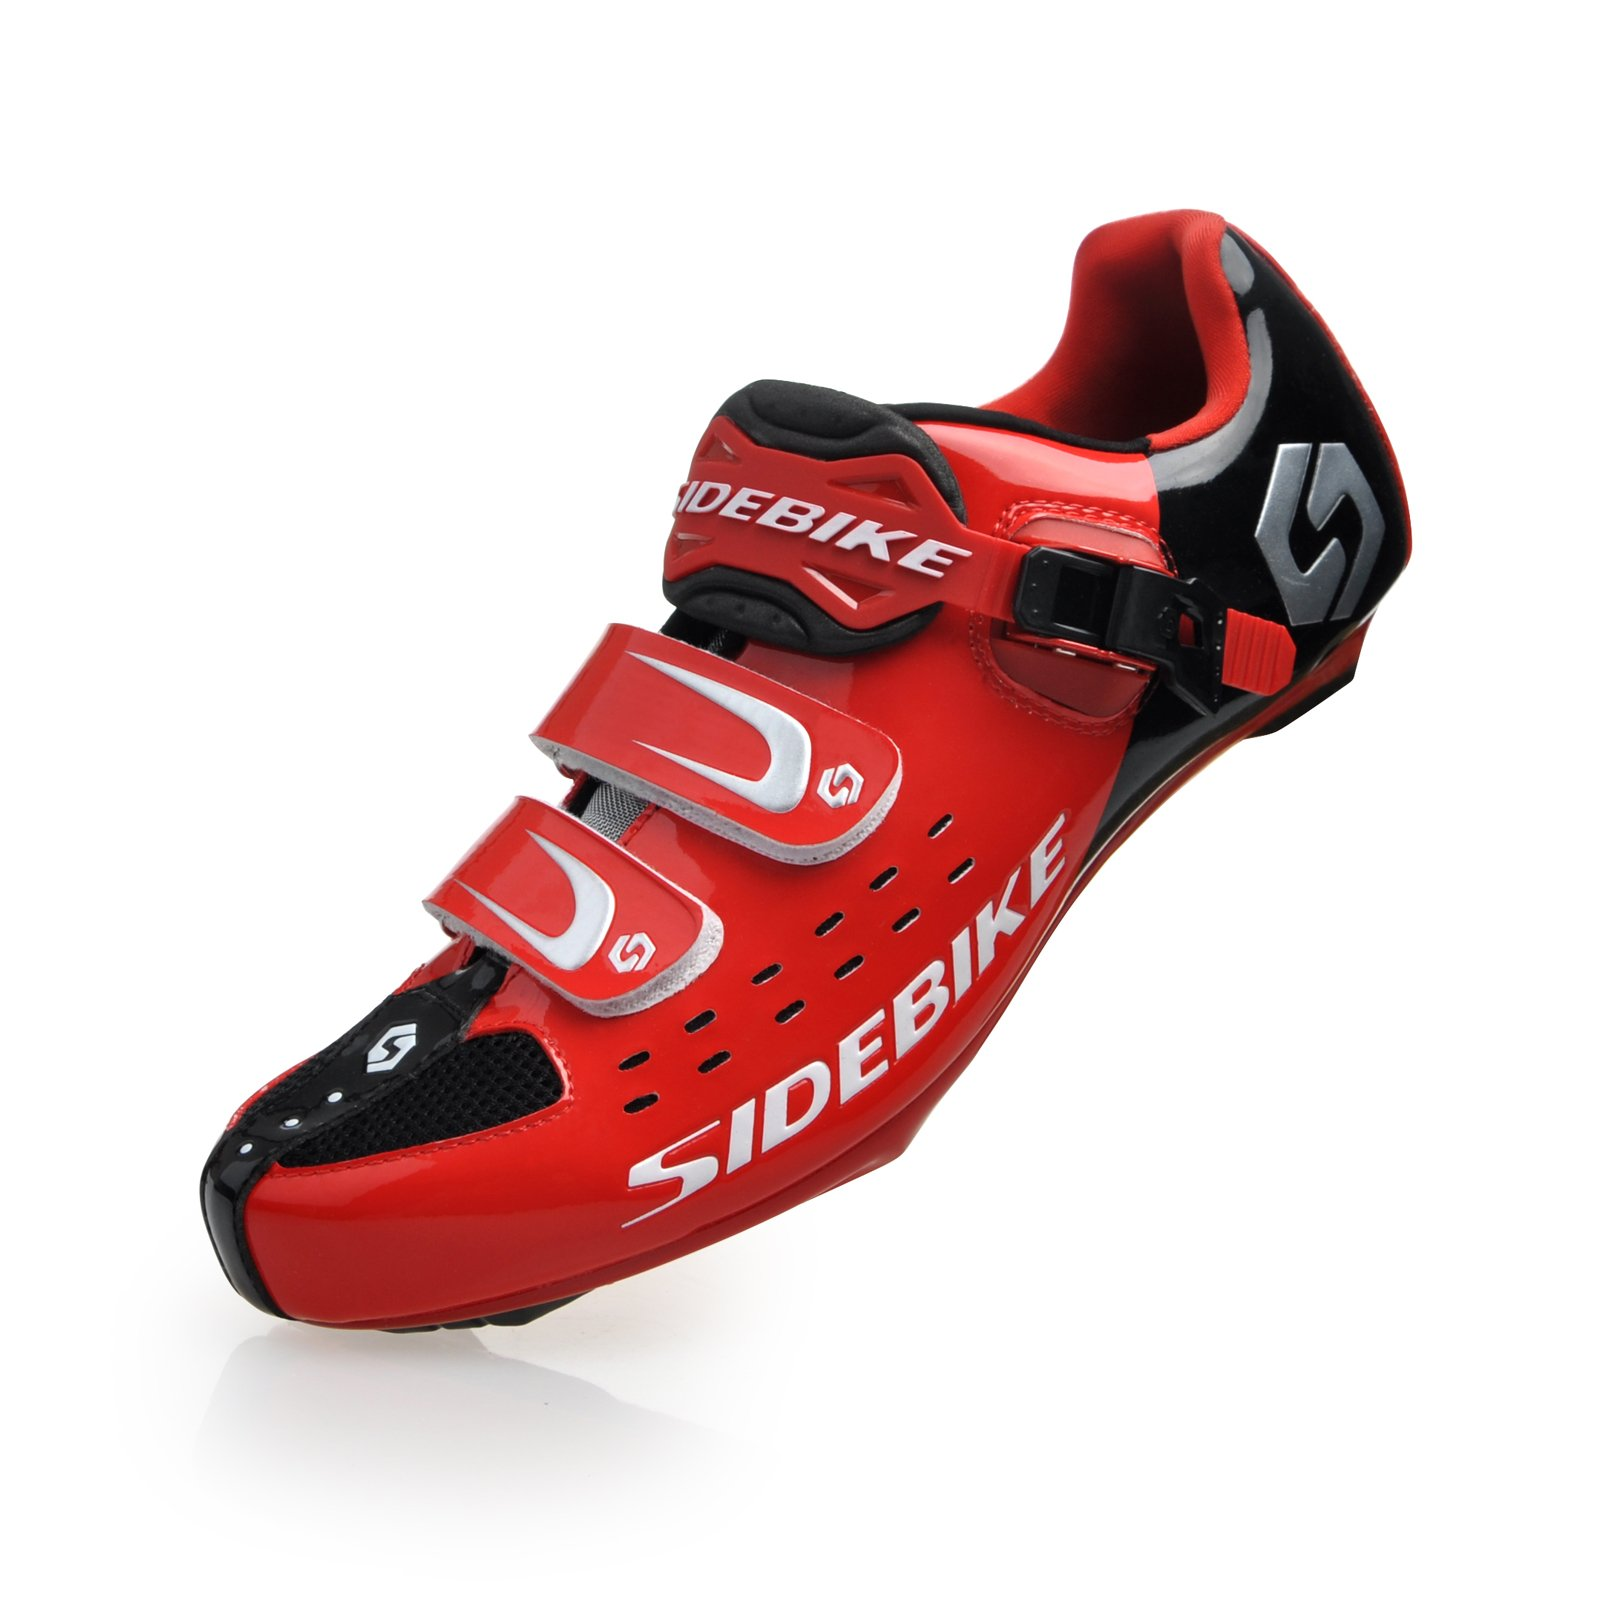 Smartodoors Men's Women's All Road Cycling Shoes Racing Cycling Shoes (Red for Road, US10)